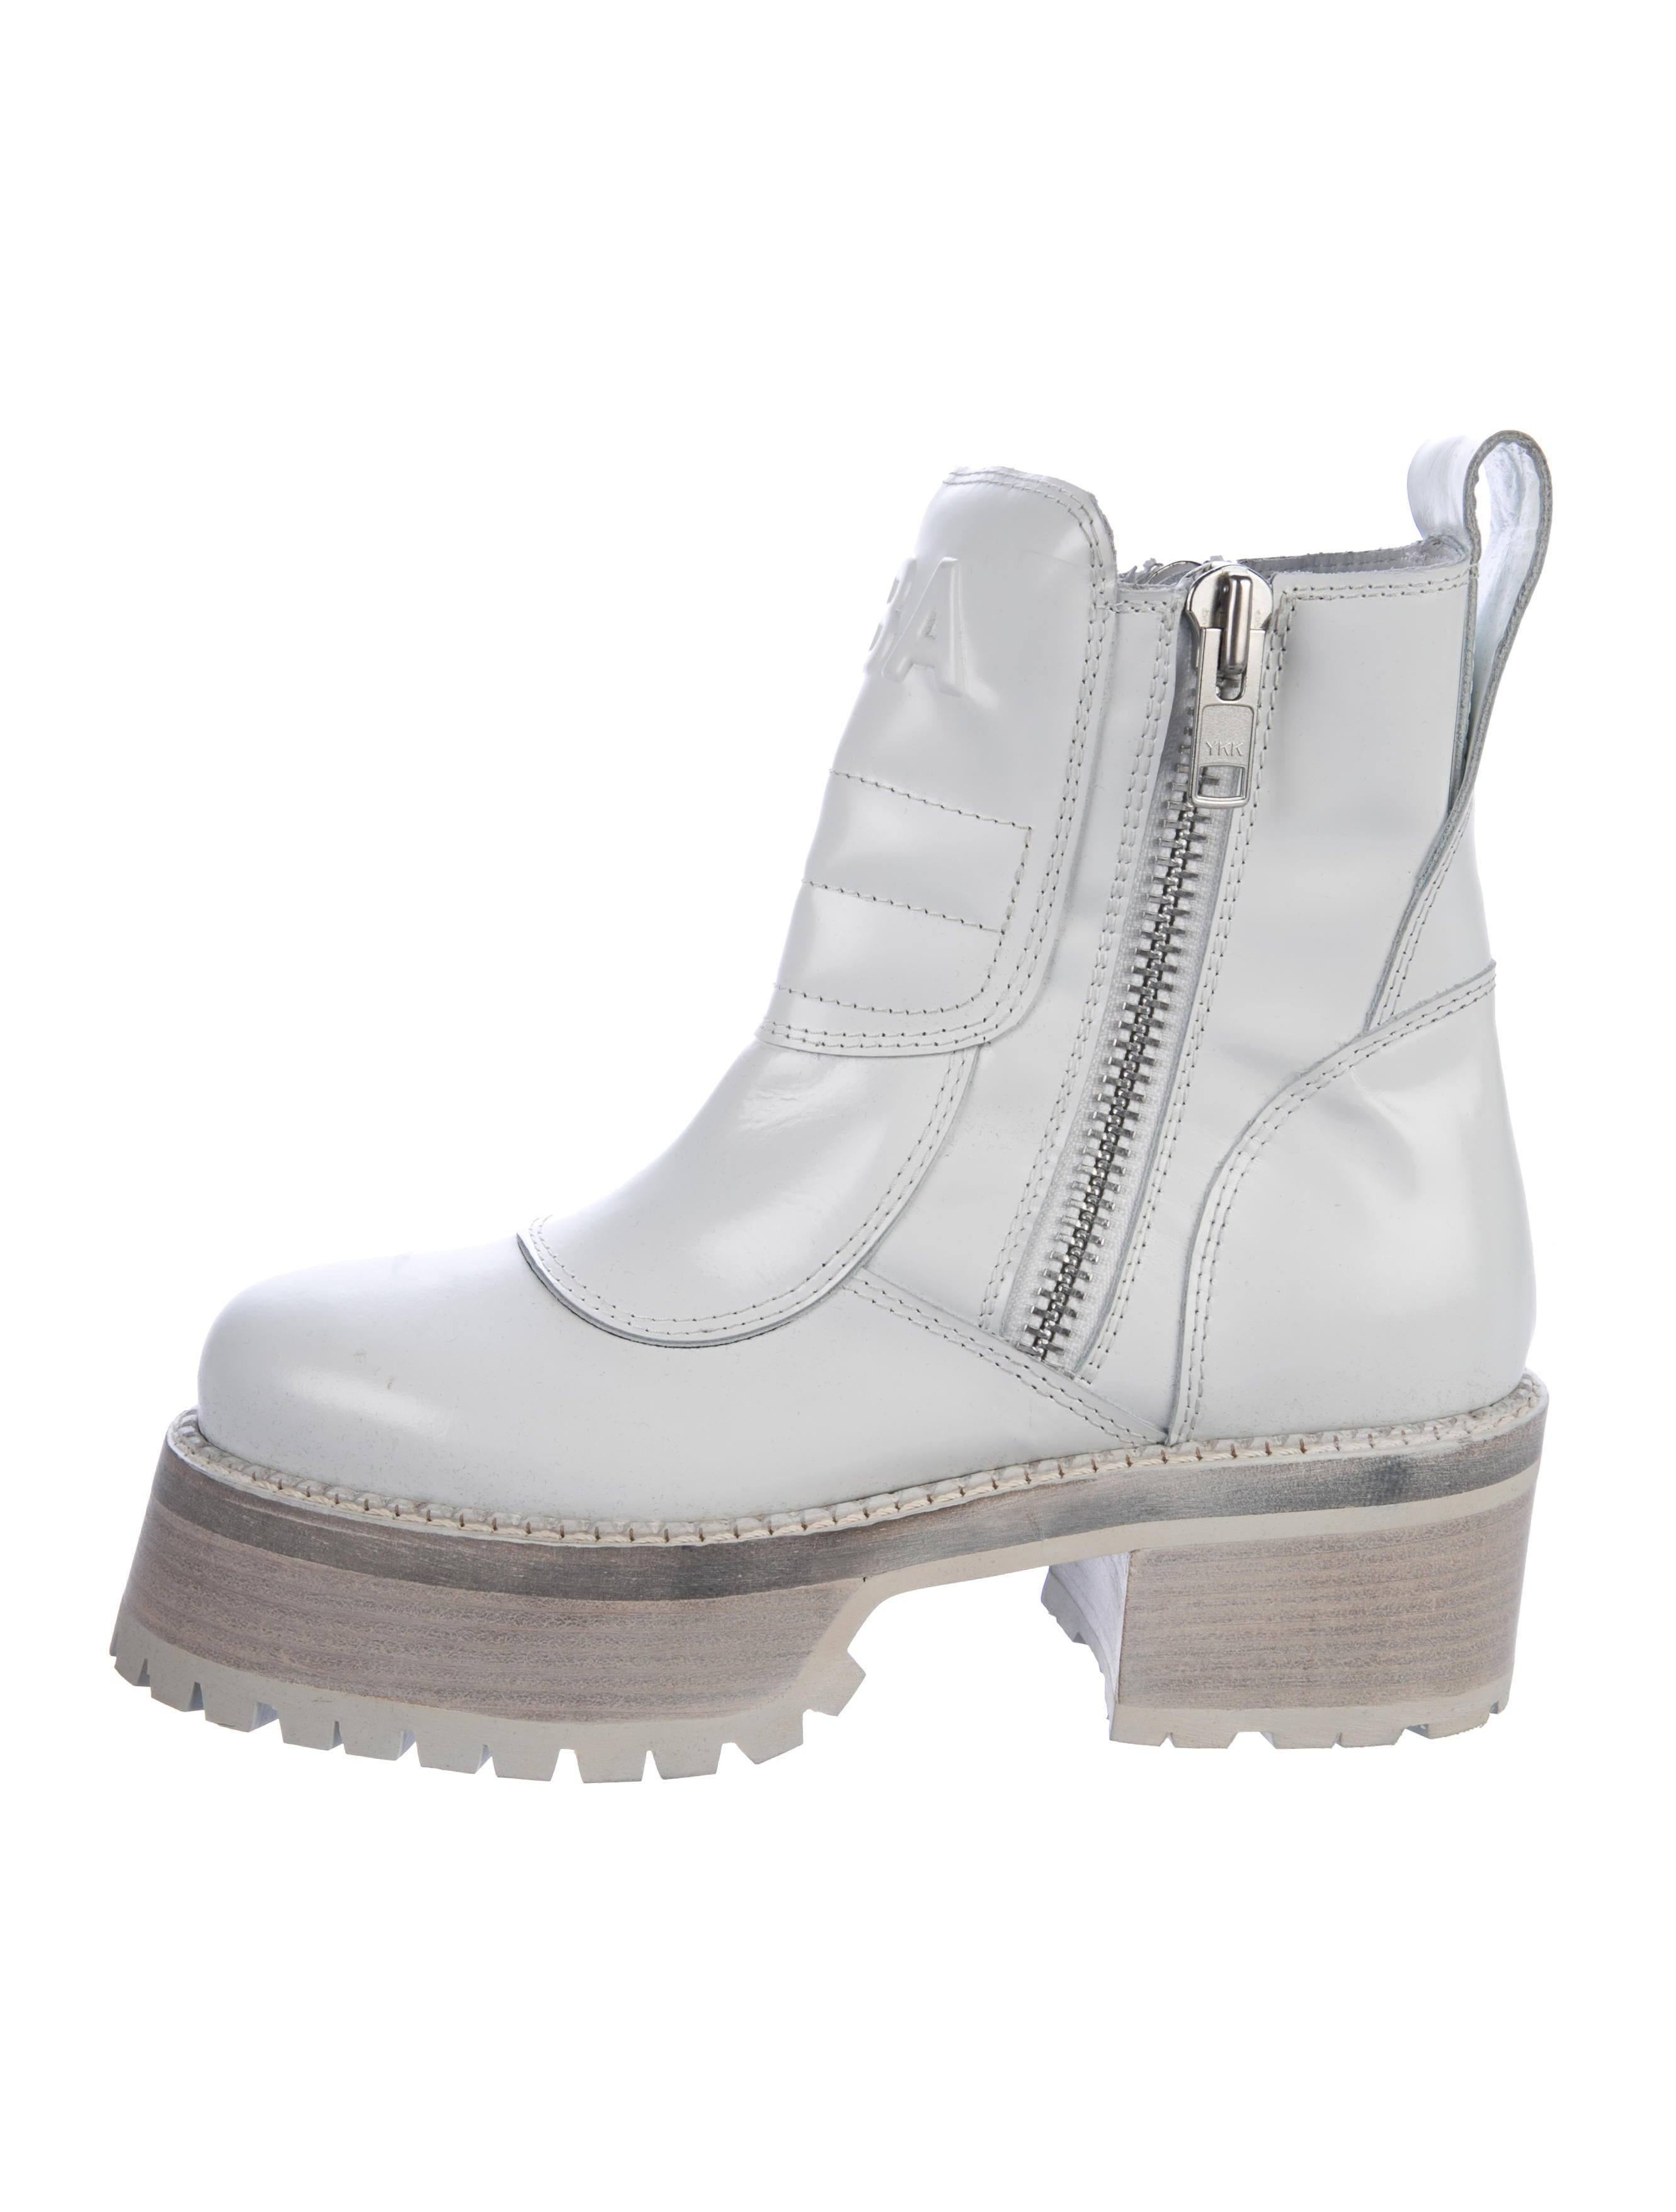 Hood By Air Centaur Leather Boots Shoes Whood20206 The Realreal